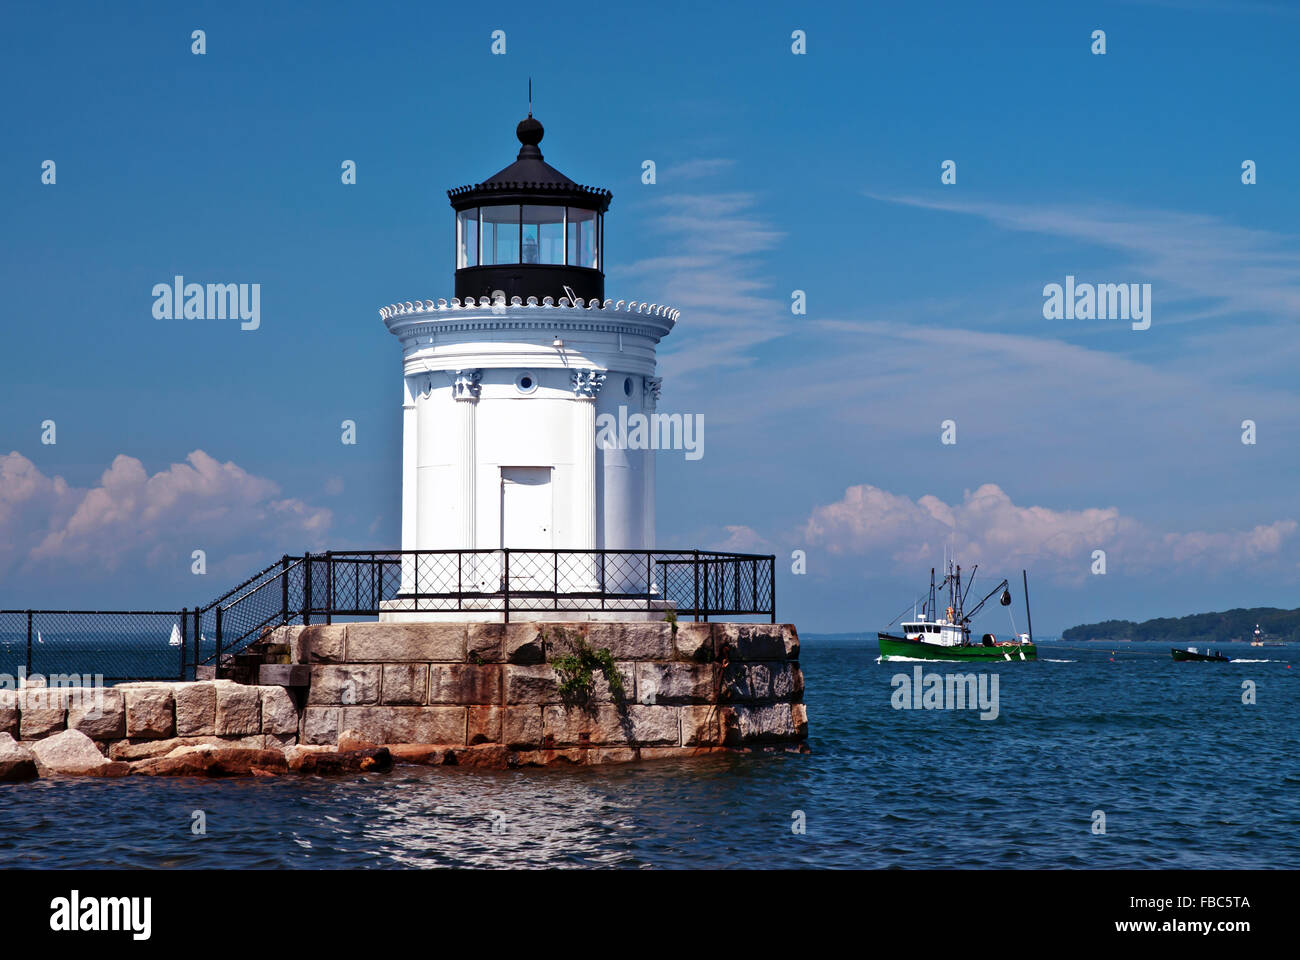 Portland Breakwater lighthouse, also referred to as Bug light, guides a fishing trawler home. It has distinctive - Stock Image